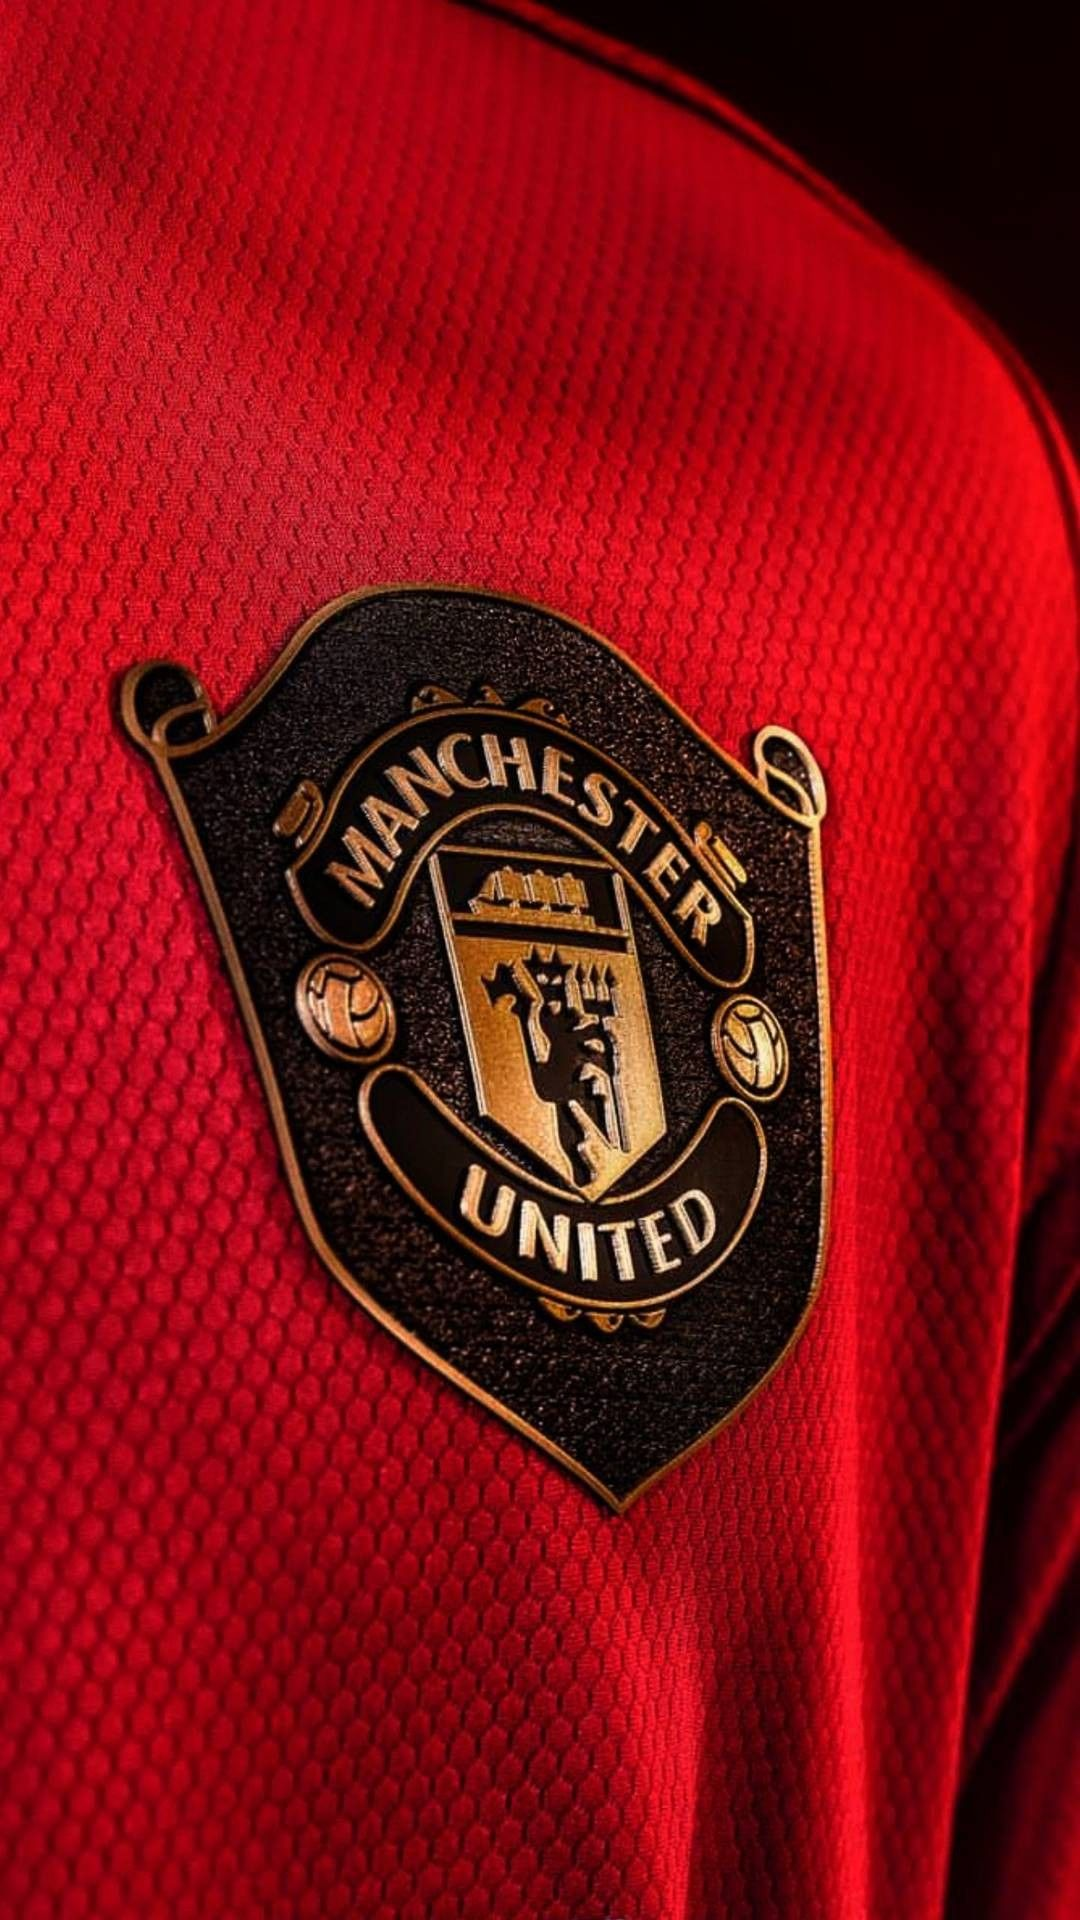 Man Utd Wallpapers Manchester United Logo Manchester United Wallpaper Manchester United Legends